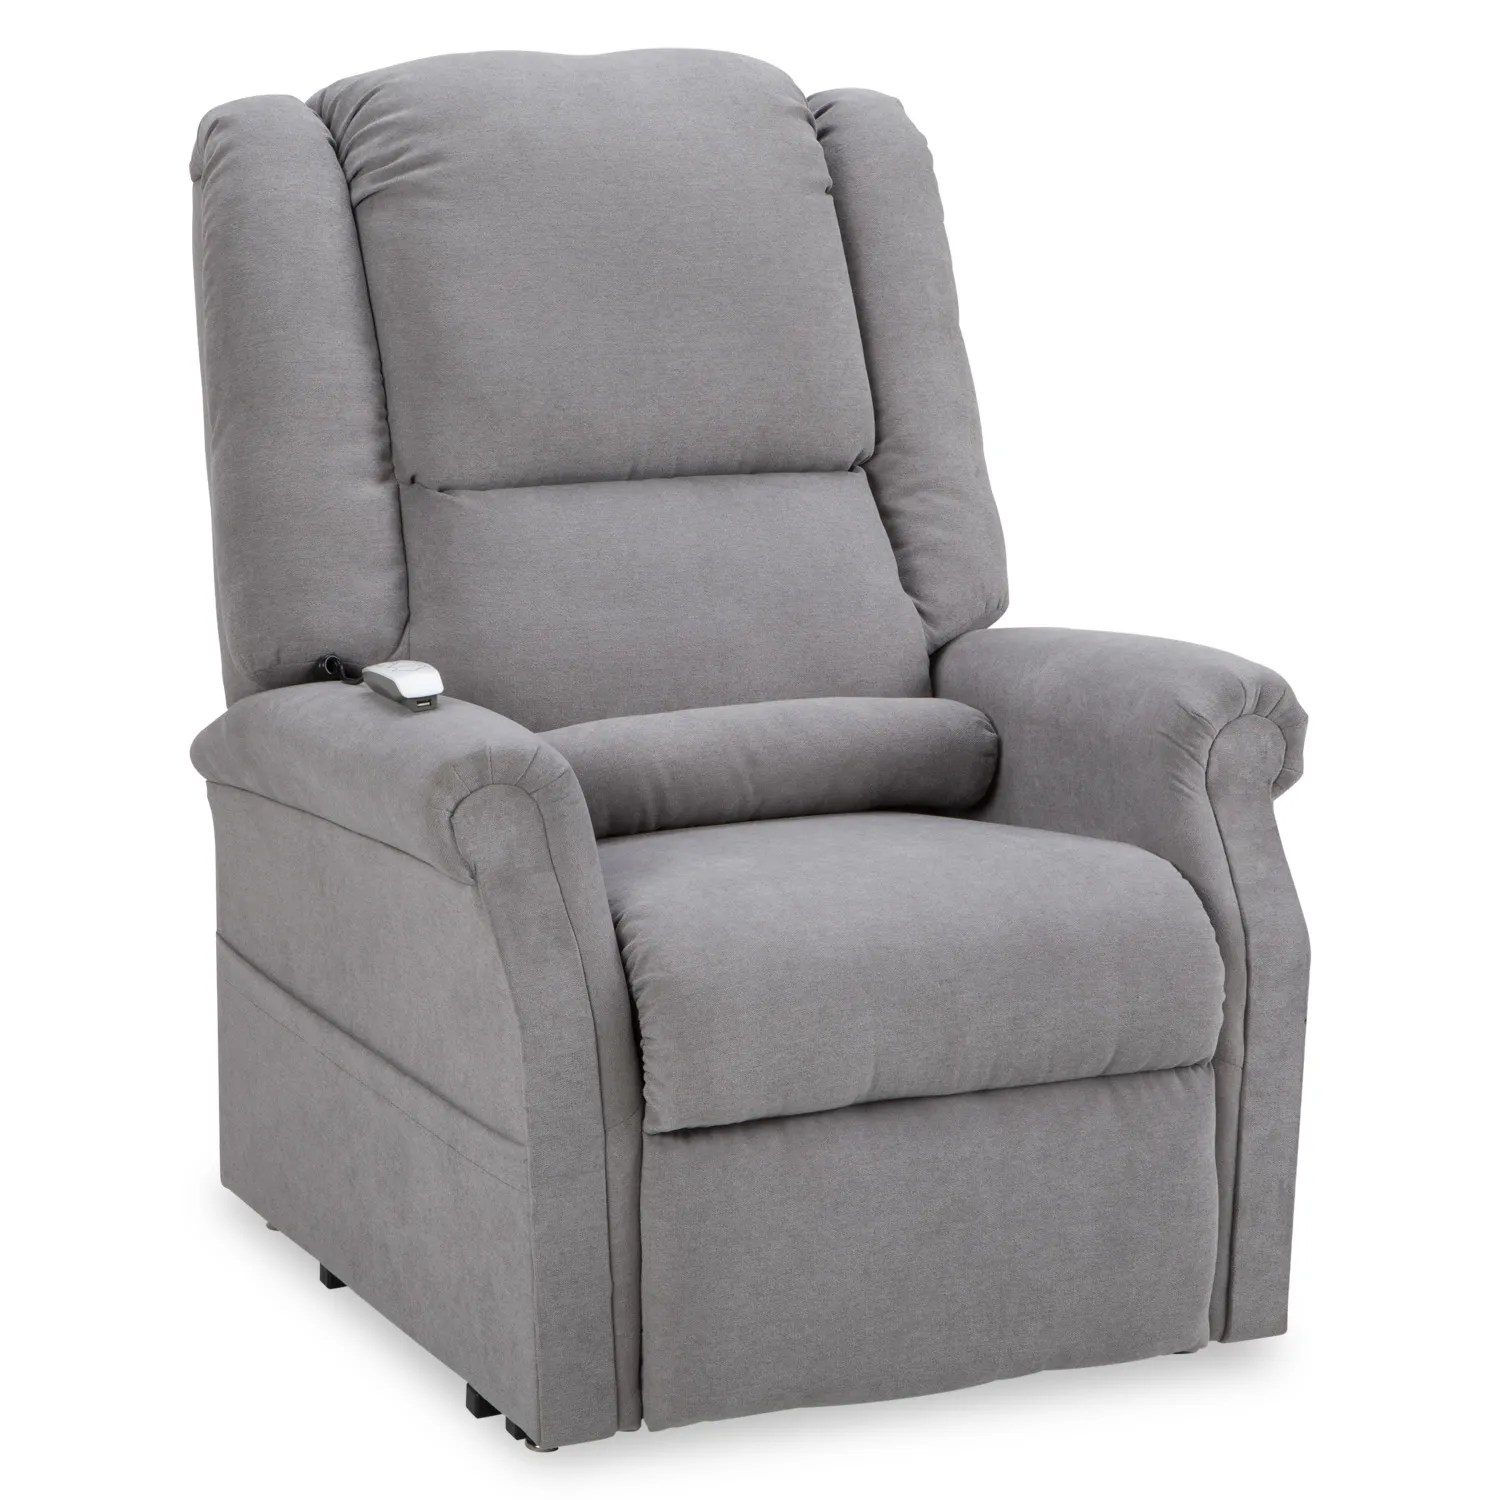 relax the back chair for sale wheelchair kl jay layflat lift chairs wg r furniture